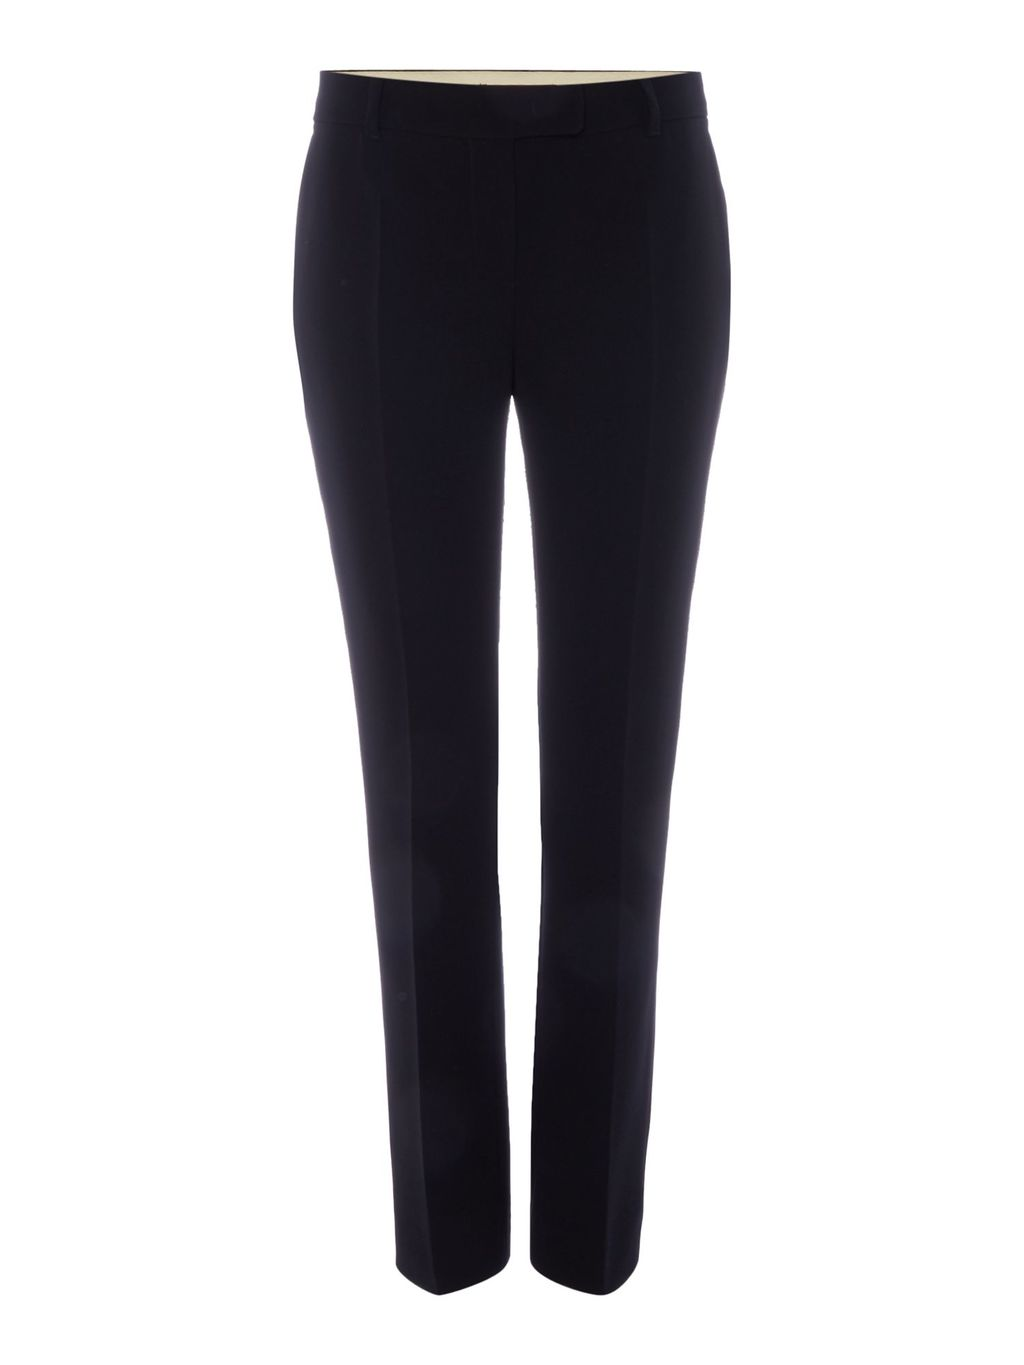 Cabaret Slim Leg Trousers, Black - length: standard; pattern: plain; waist: mid/regular rise; predominant colour: black; fibres: polyester/polyamide - mix; fit: slim leg; pattern type: fabric; texture group: woven light midweight; style: standard; occasions: creative work; season: s/s 2016; wardrobe: basic